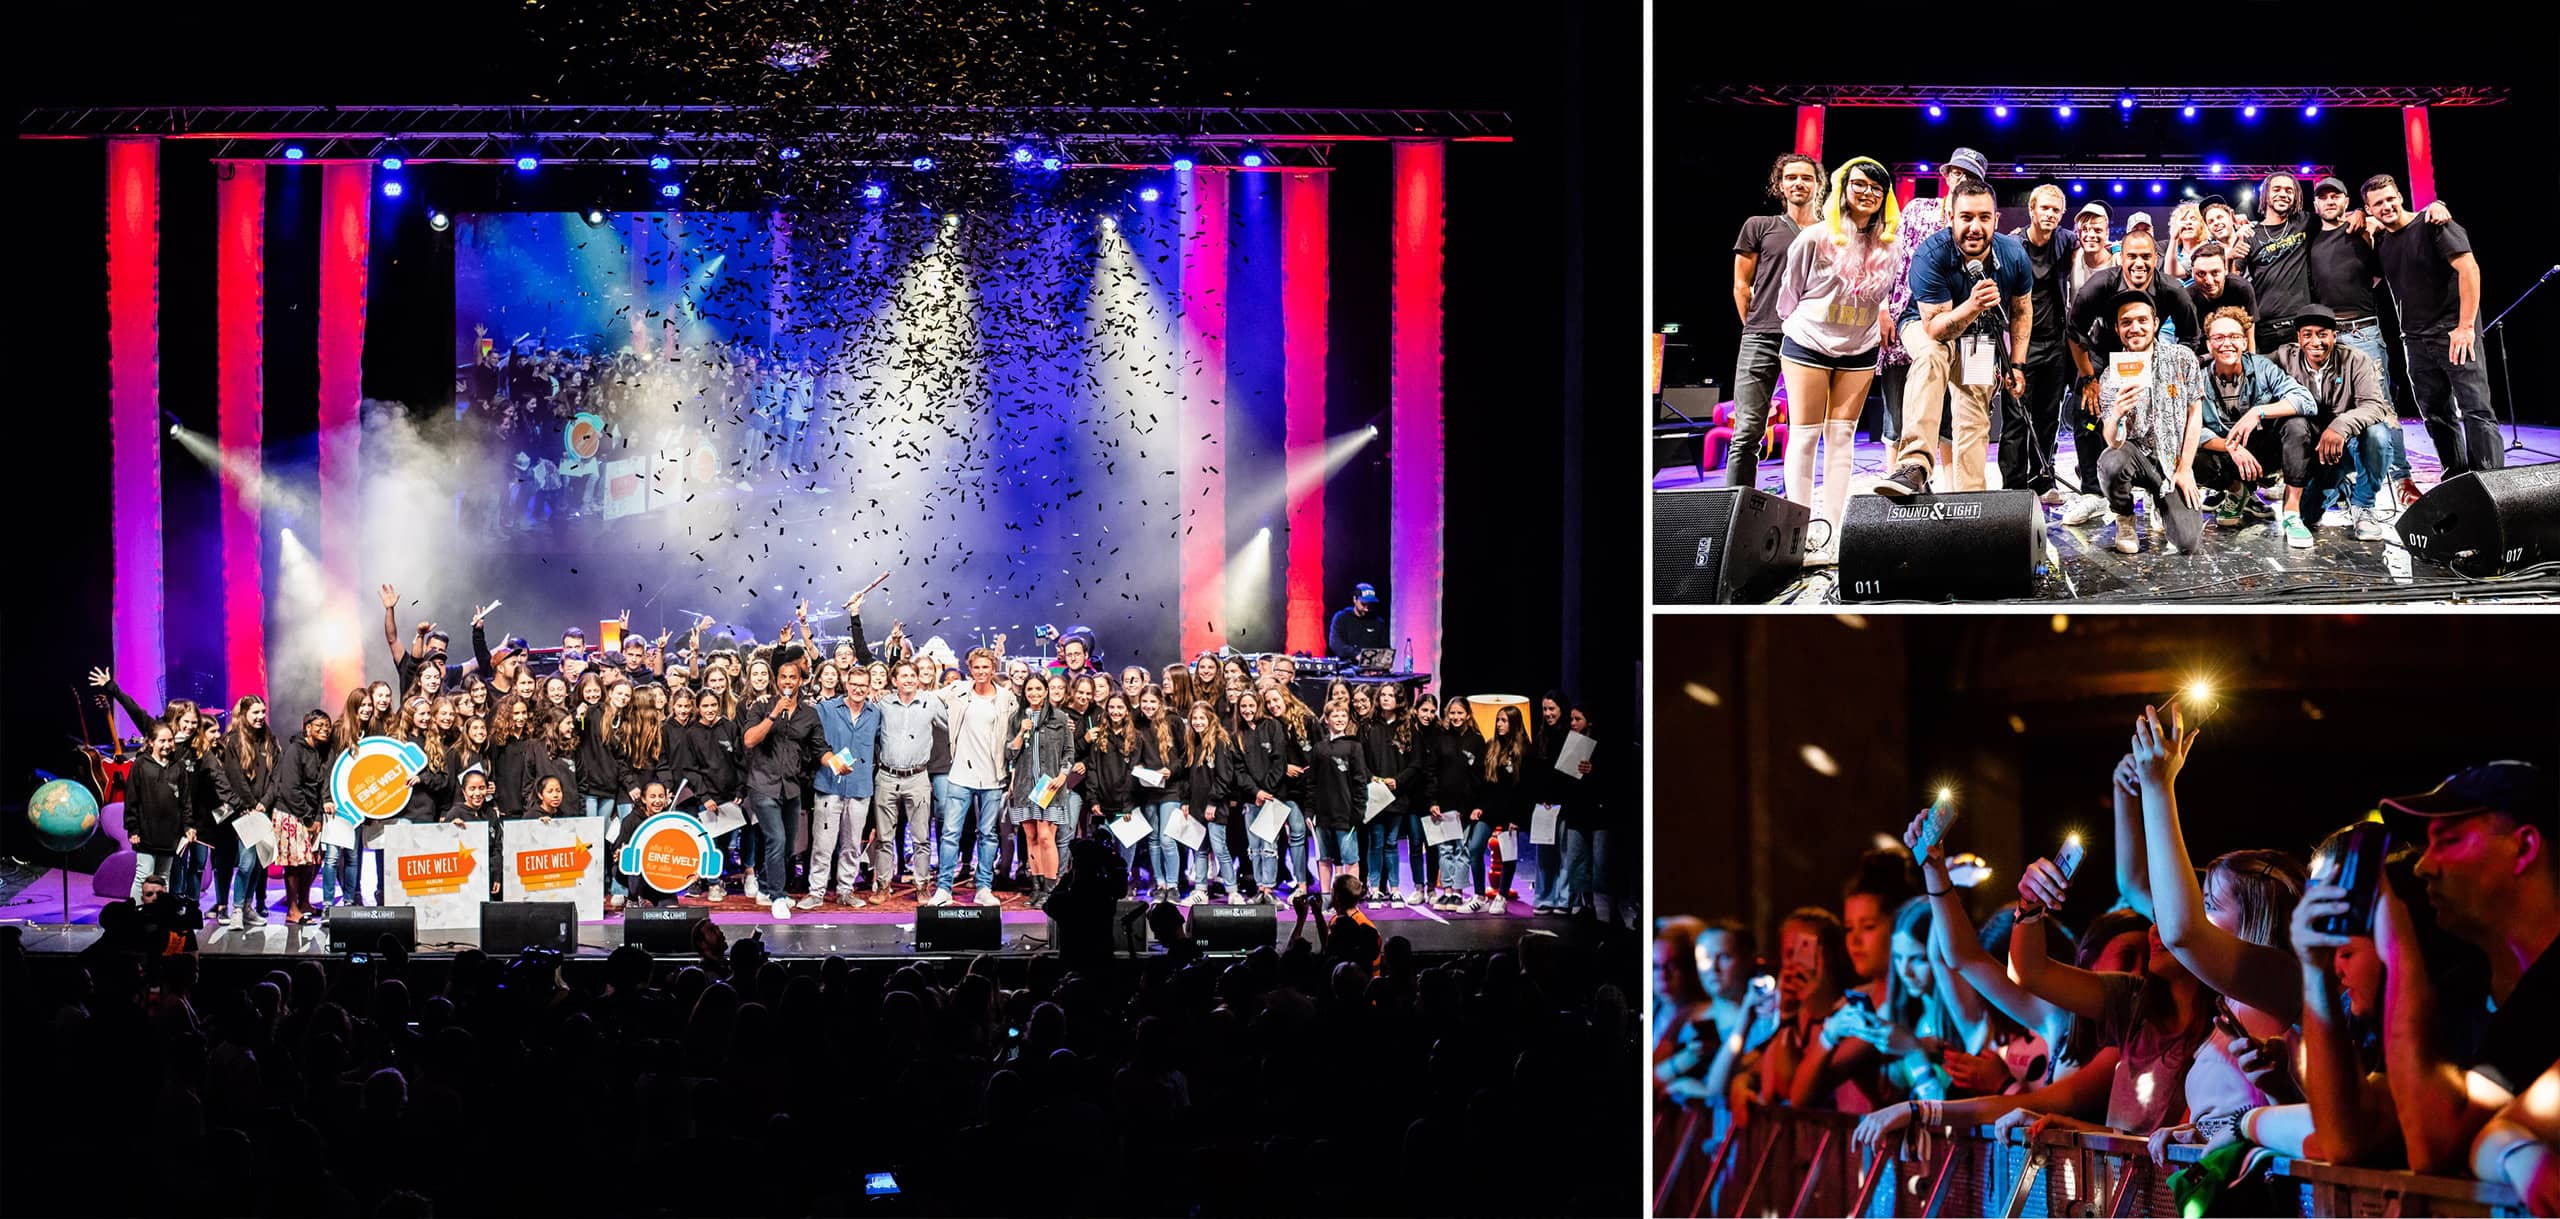 Engagement-Global-Song-Contest-Festival-2018-Veranstaltung